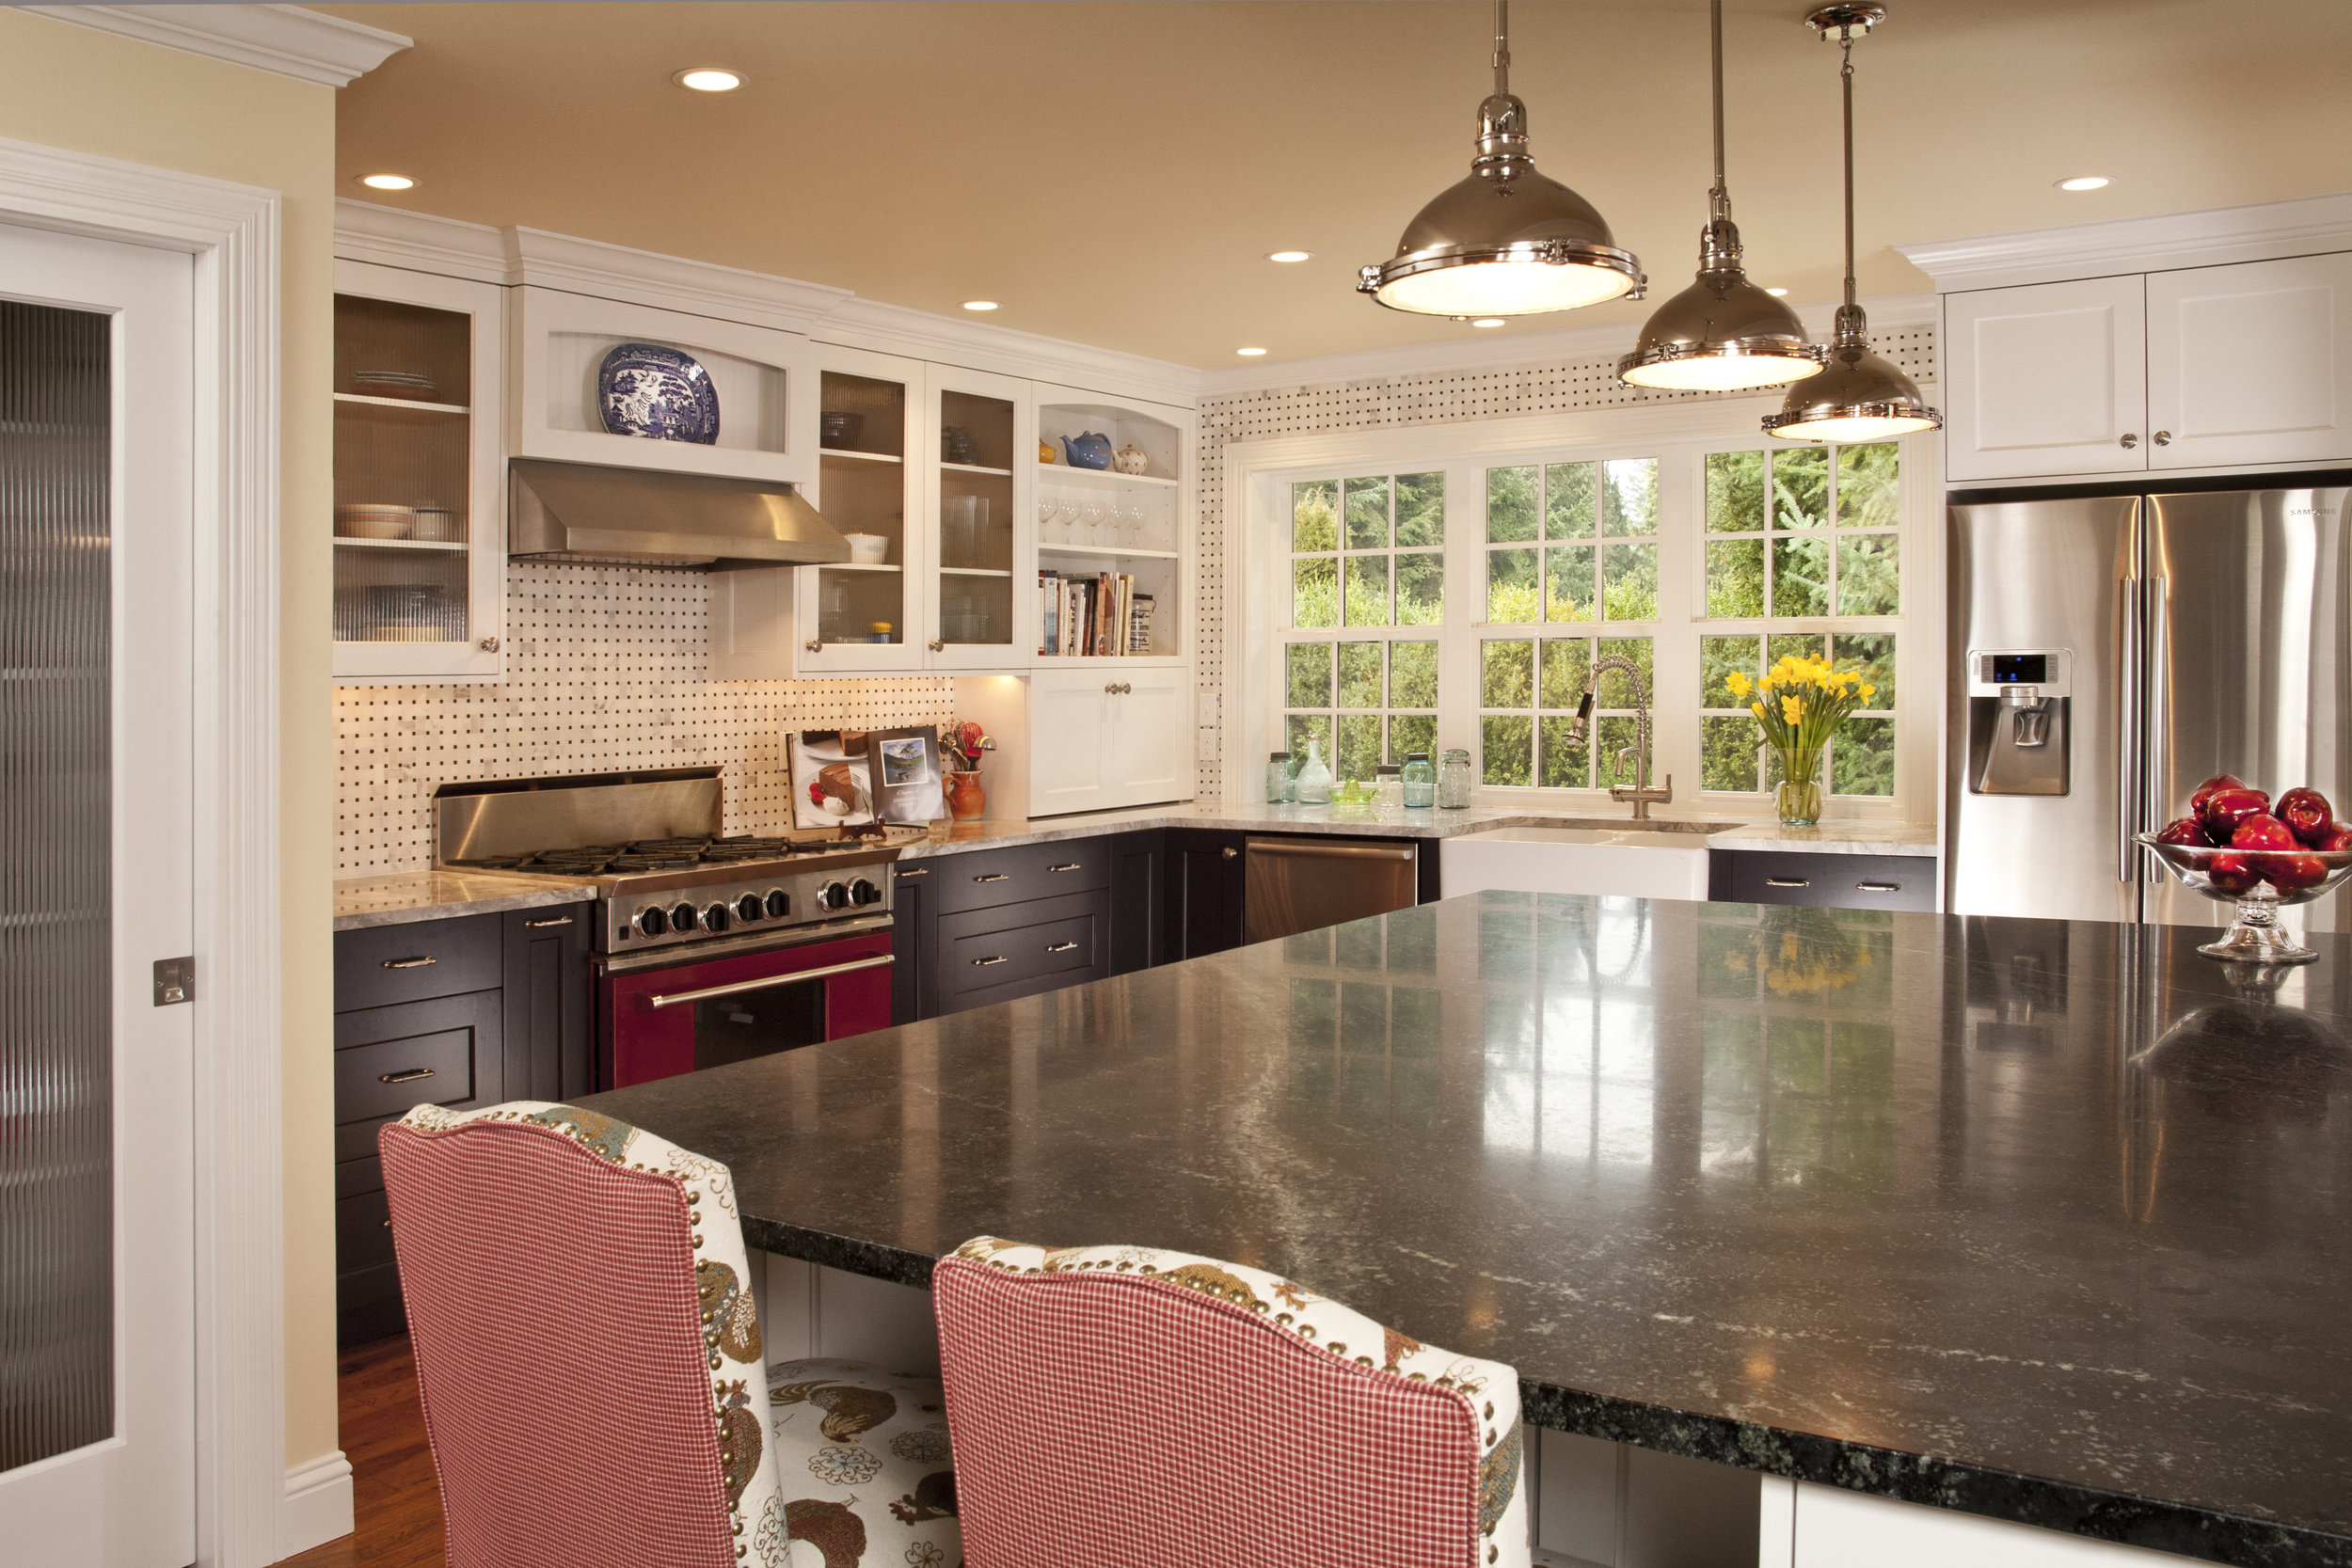 Woodiville Country Kitchen 1.jpg